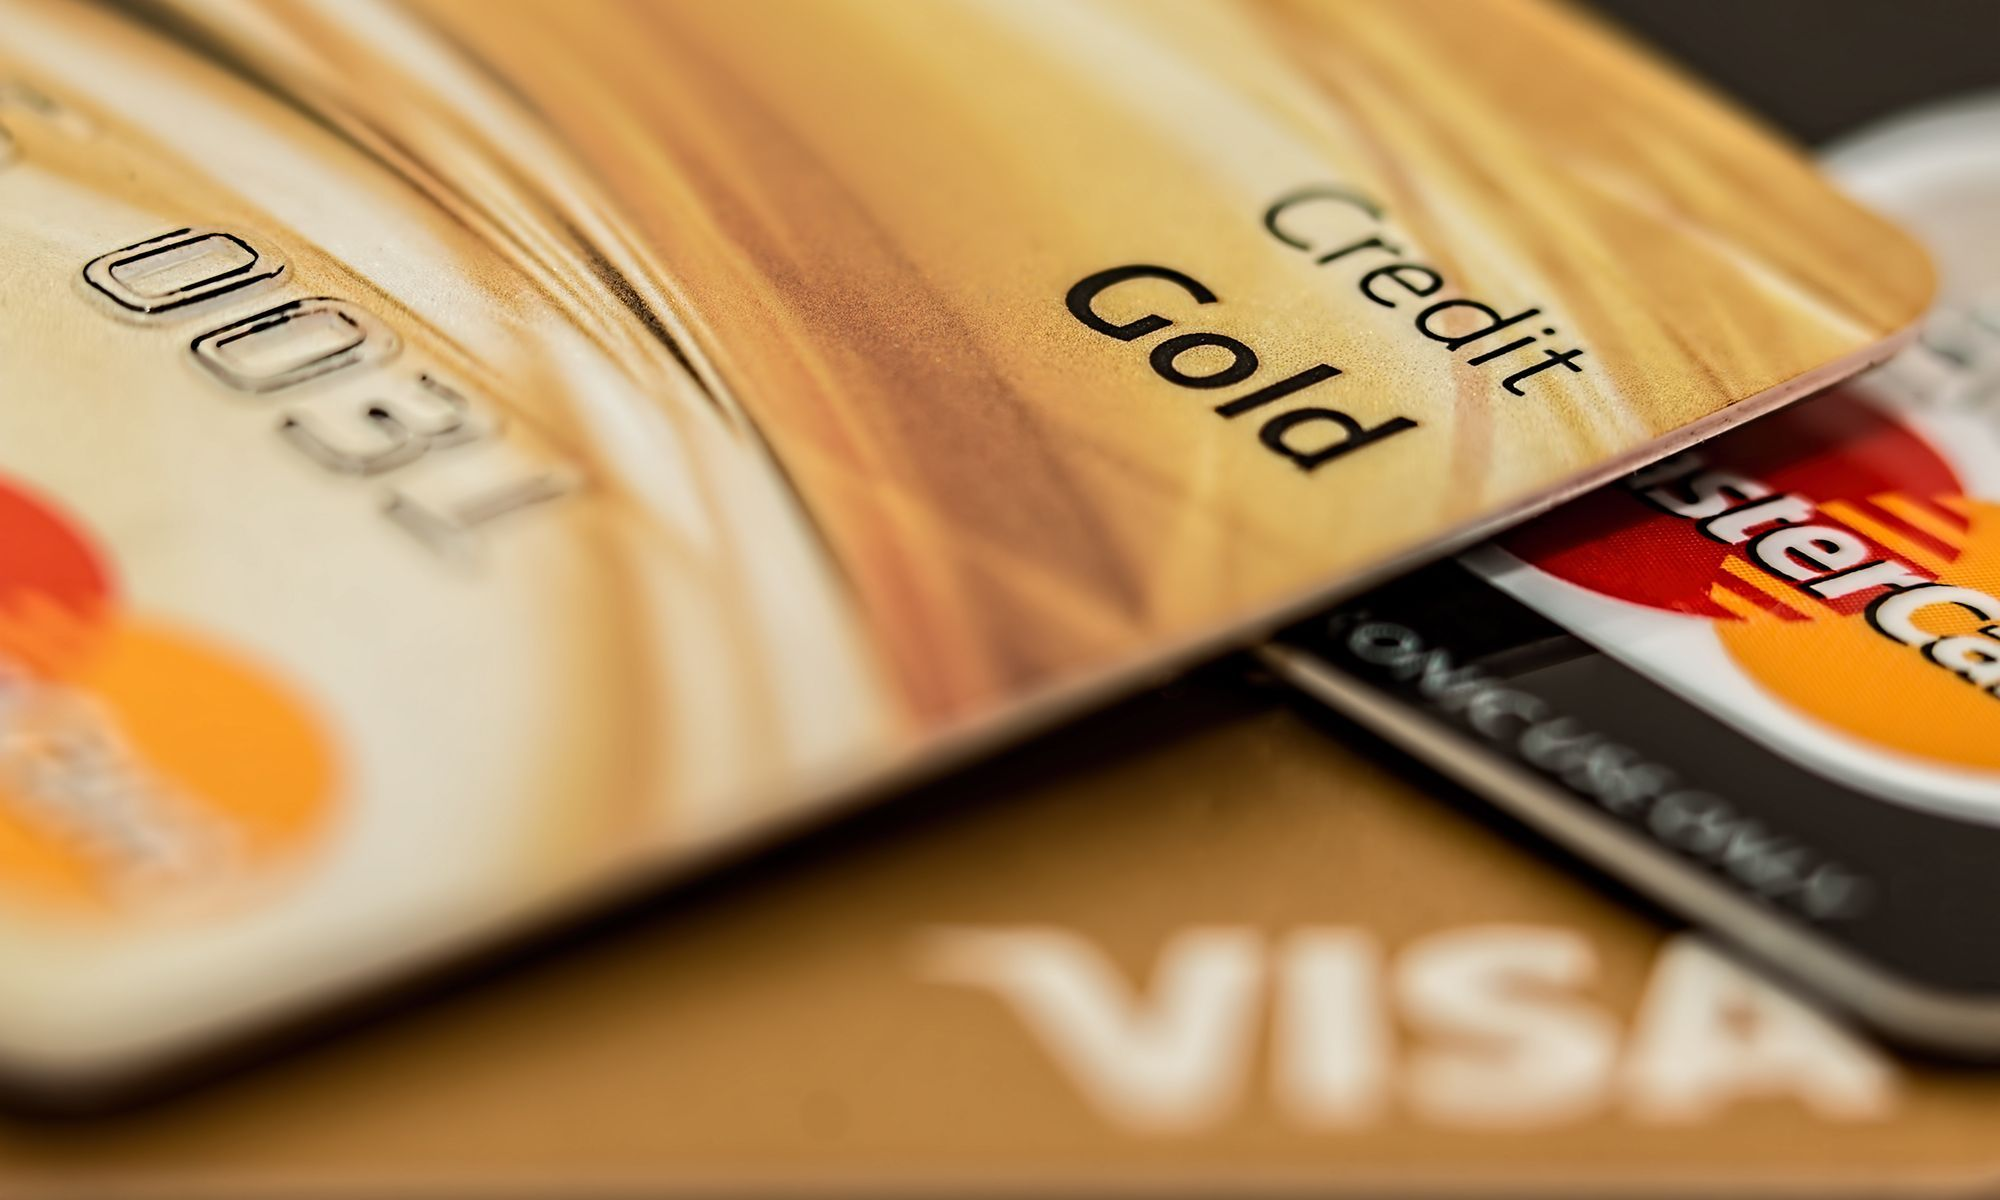 8 steps checklist to PCI compliance - Does your hotel meet the requirements?